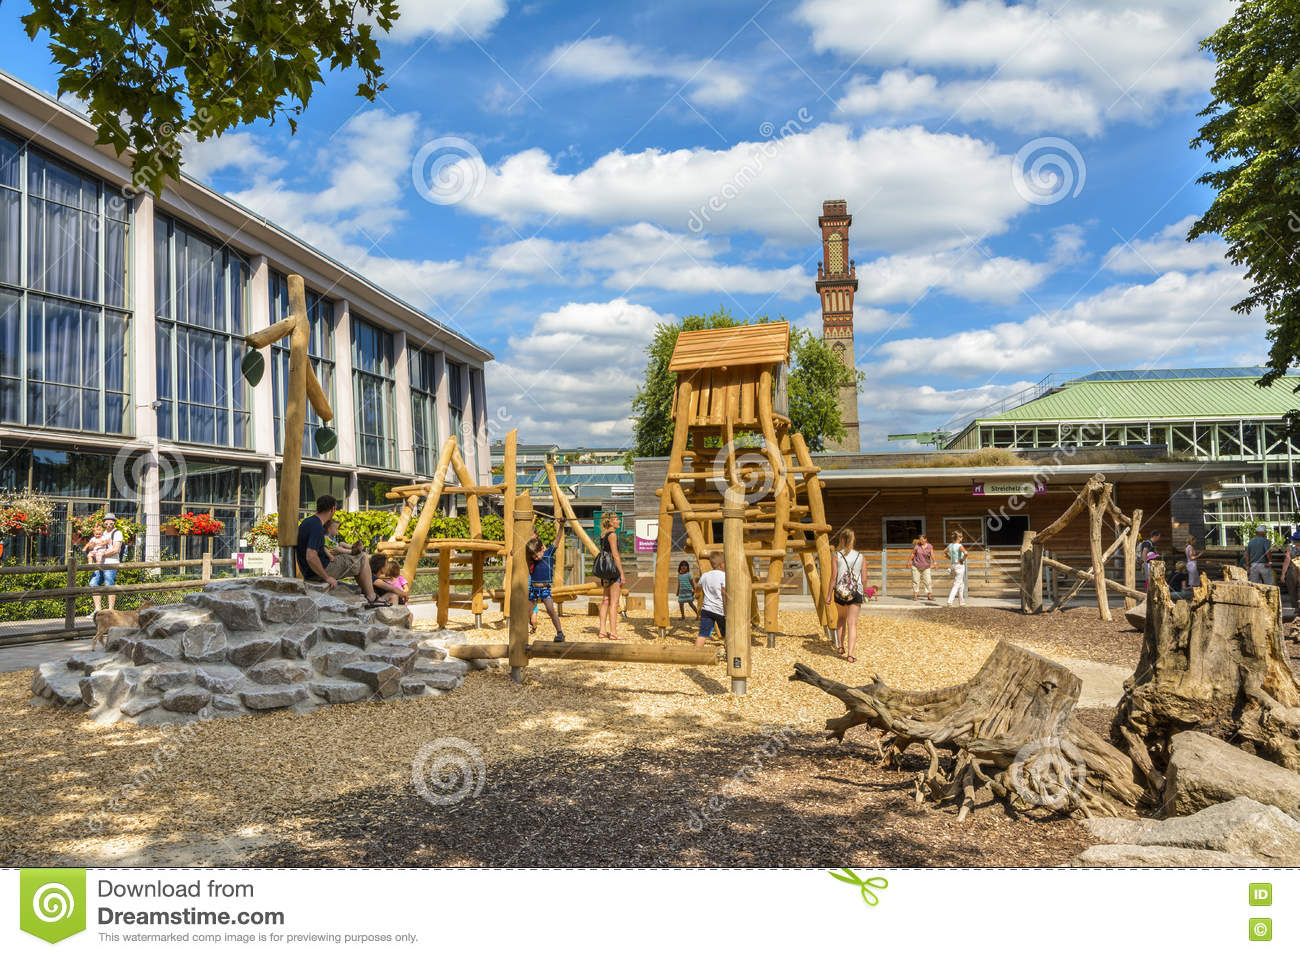 Zoologischer Garten Karlsruhe Playground In Karlsruhe Zoo Editorial Photo Image Of Germany